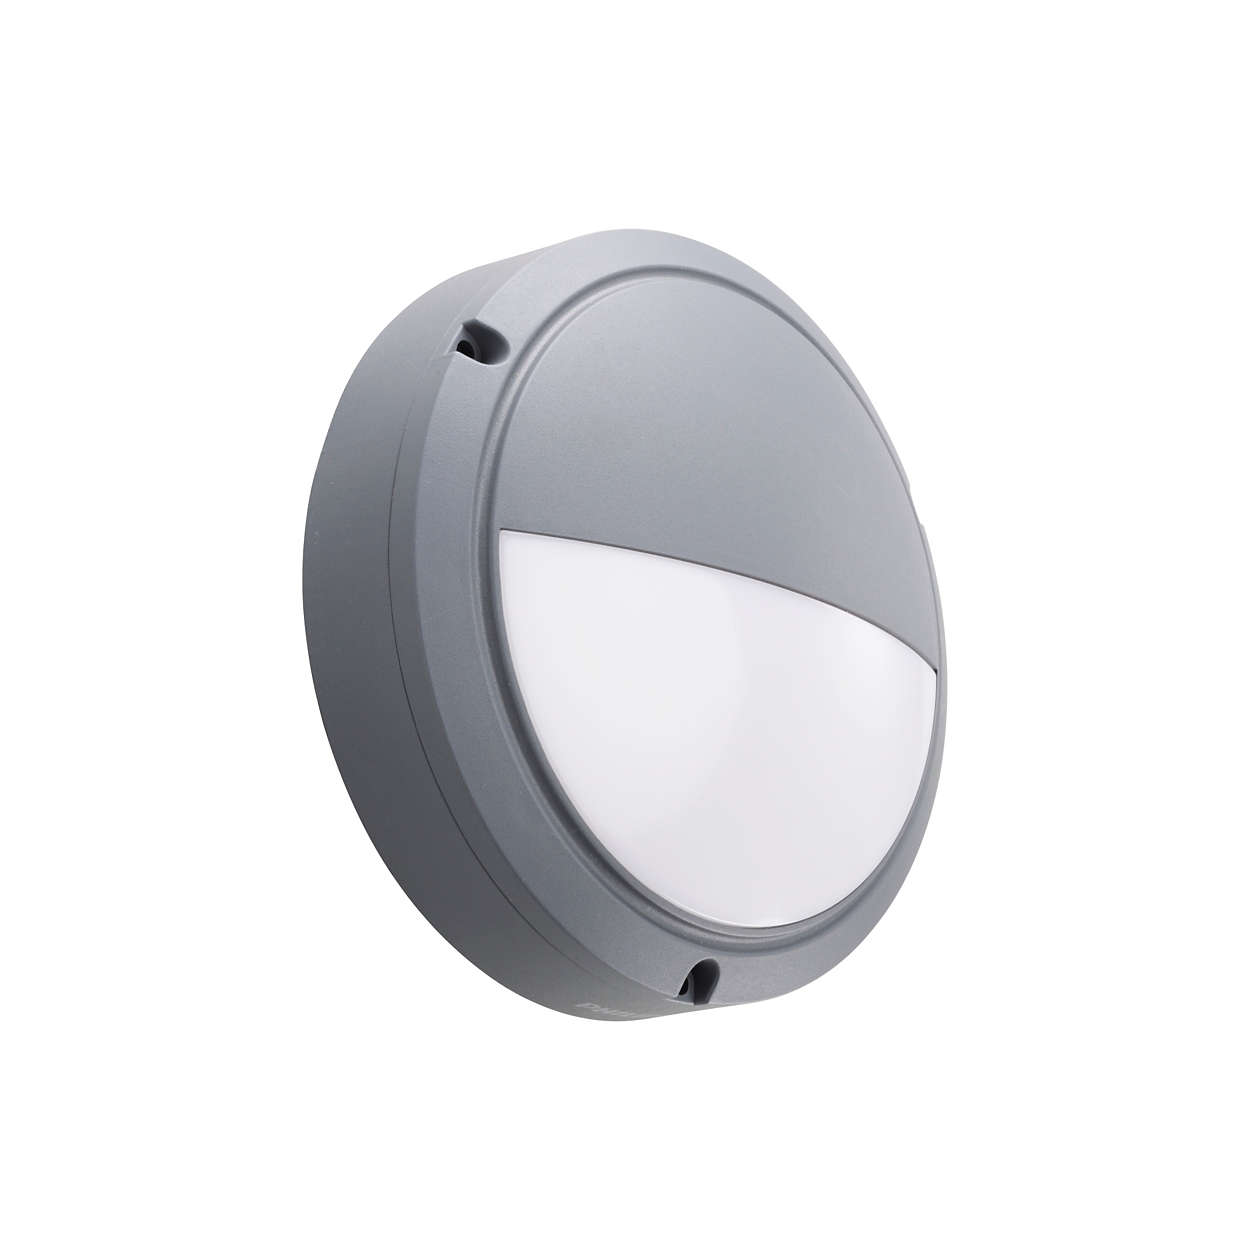 LED Wall Mount BWS150/151 – Reliable landscape lighting for harmonious city living